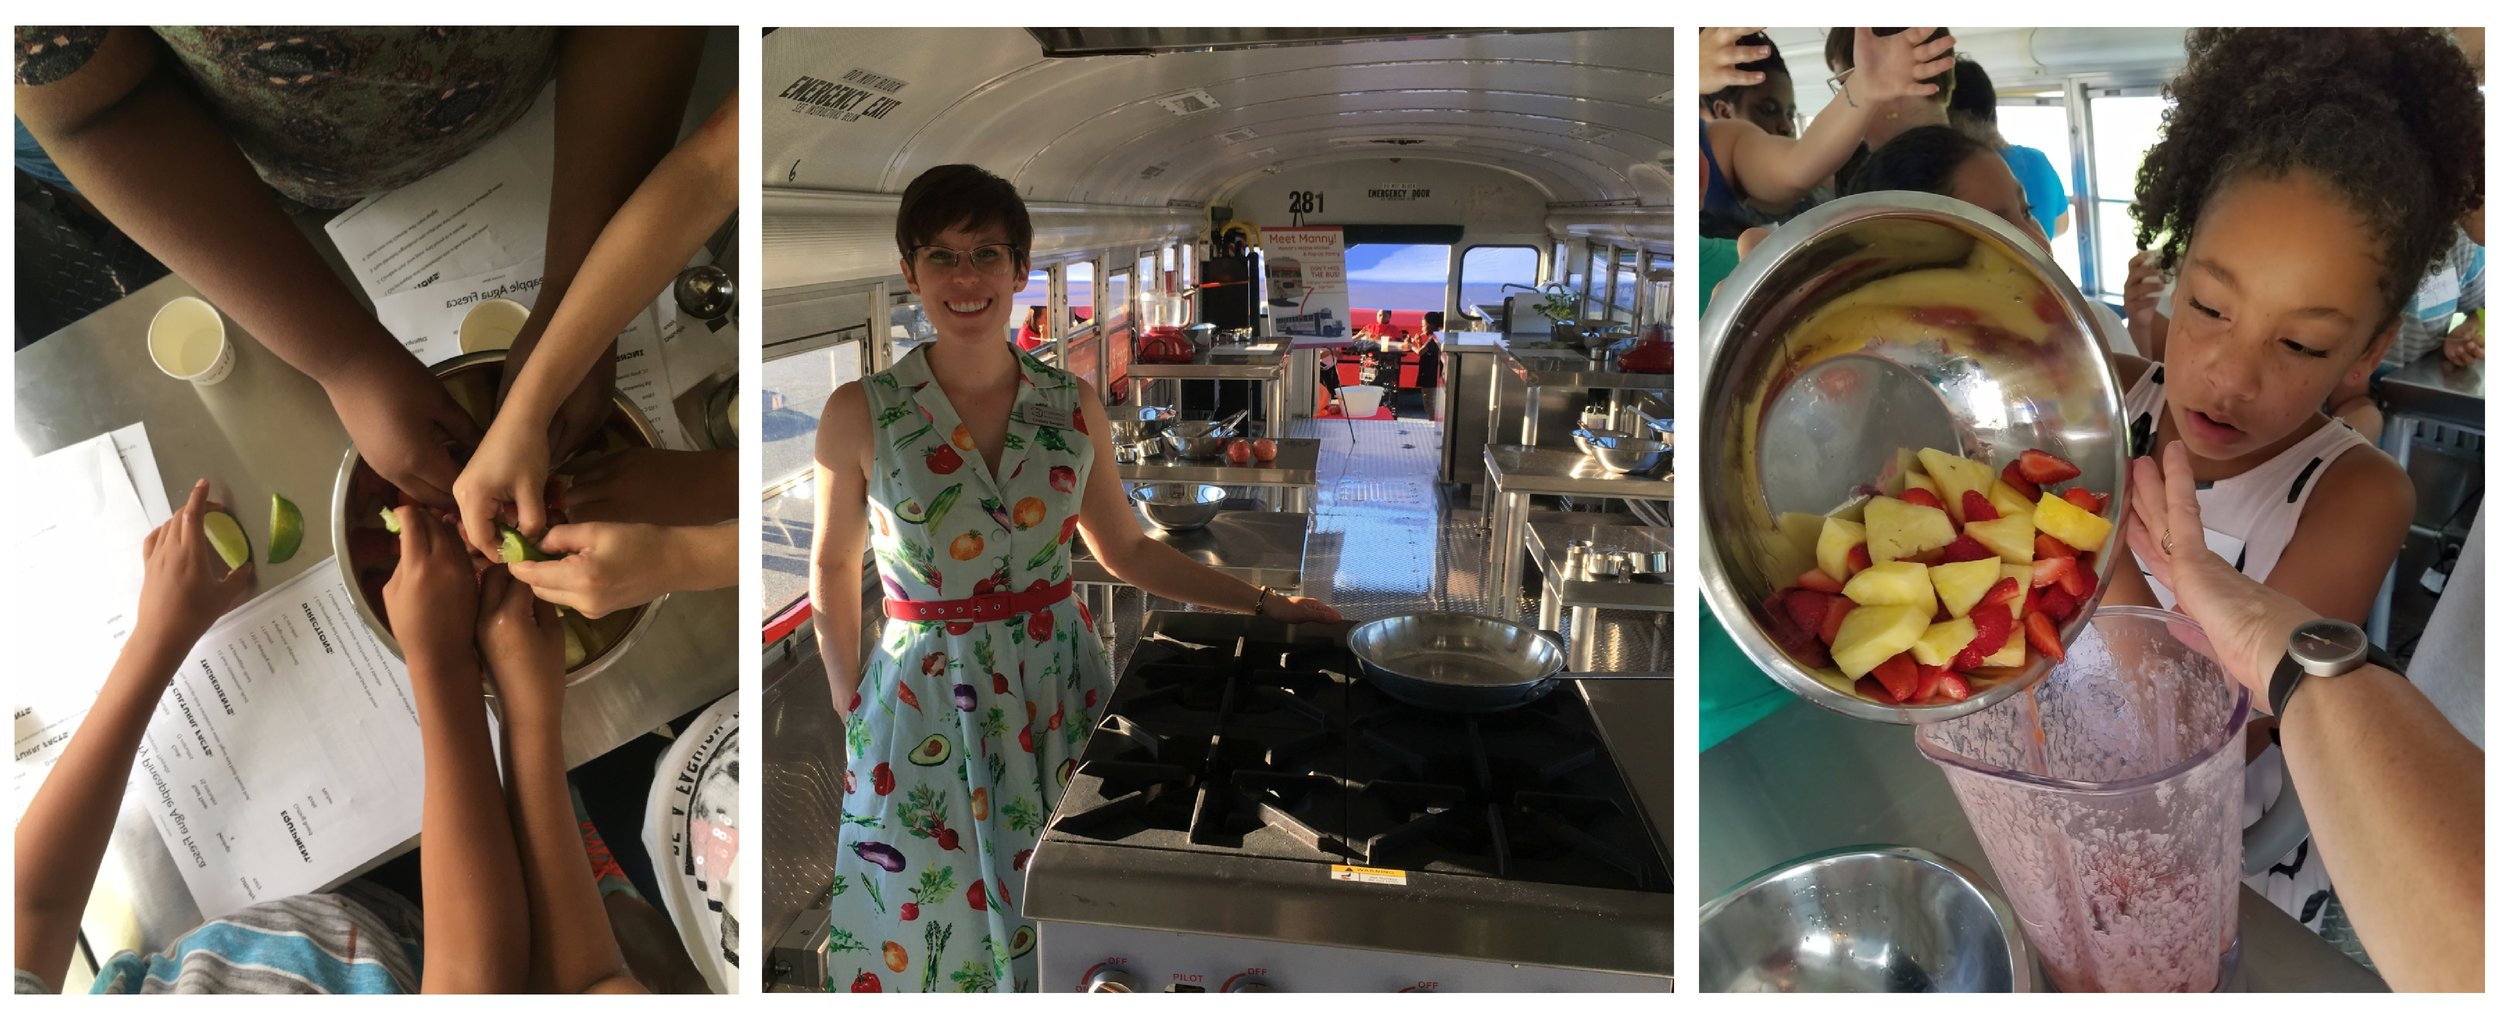 Photos of programs, staff and volunteers inside Manna Food Center's bus that serves as a kitchen-classroom and mobile food pantry on wheels. Photos courtesy of Manna Food Center.